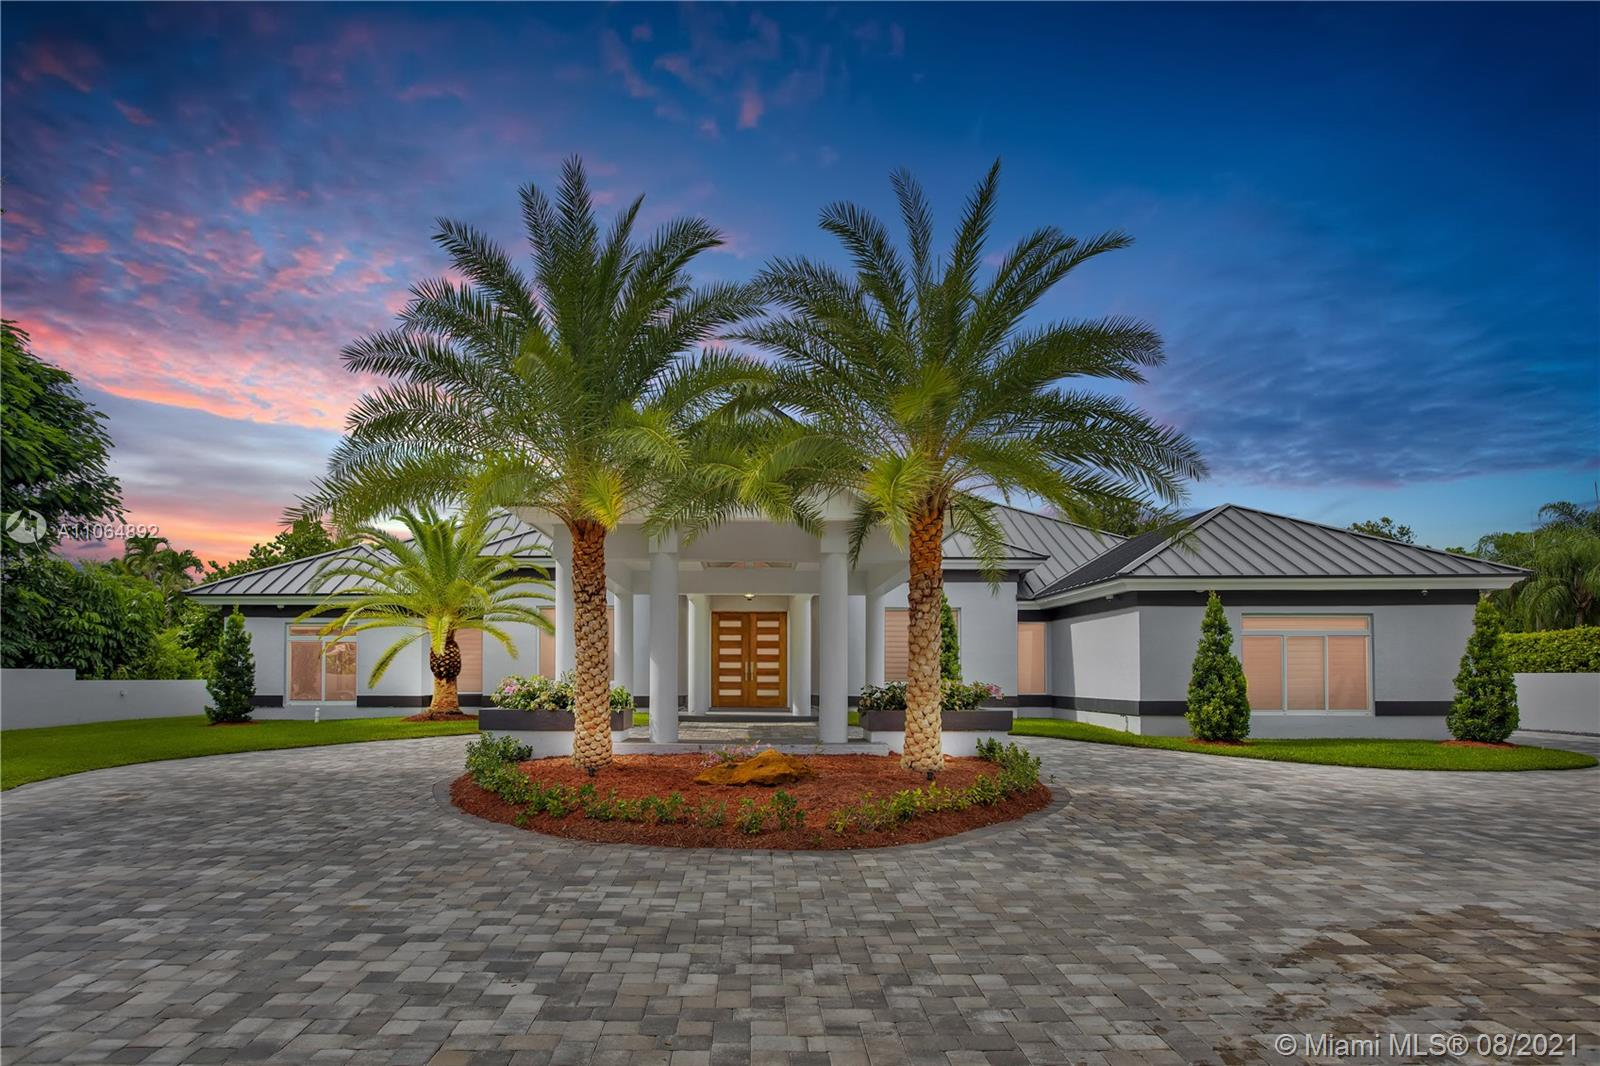 Completely remodeled in 2020 modern Pinecrest Estate 6/6.5 with top of the line features. Everything new including elec, plumbing, metal roof, 5 a/c units, heated pool/spa, 8ft Italian interior doors, vaulted ceilings, impact doors/windows, tankless water heater, air conditioned 3 car garage. New kitchen with high end appliances, wood cabinets, quartz countertops & oversized island along with a 58 bottle wine cooler is perfect for entertaining.  Master suite has adjacent private bonus room w/ private garden! Dome gazebo is surrounded by a pond with a relaxing cascading waterfall, perfect for friends & family gatherings. Maids quarter. Smart home, control everything from the app, including alarm & camera system! Excellent Pinecrest schools nearby including Gulliver, Westminster, St. Thomas.